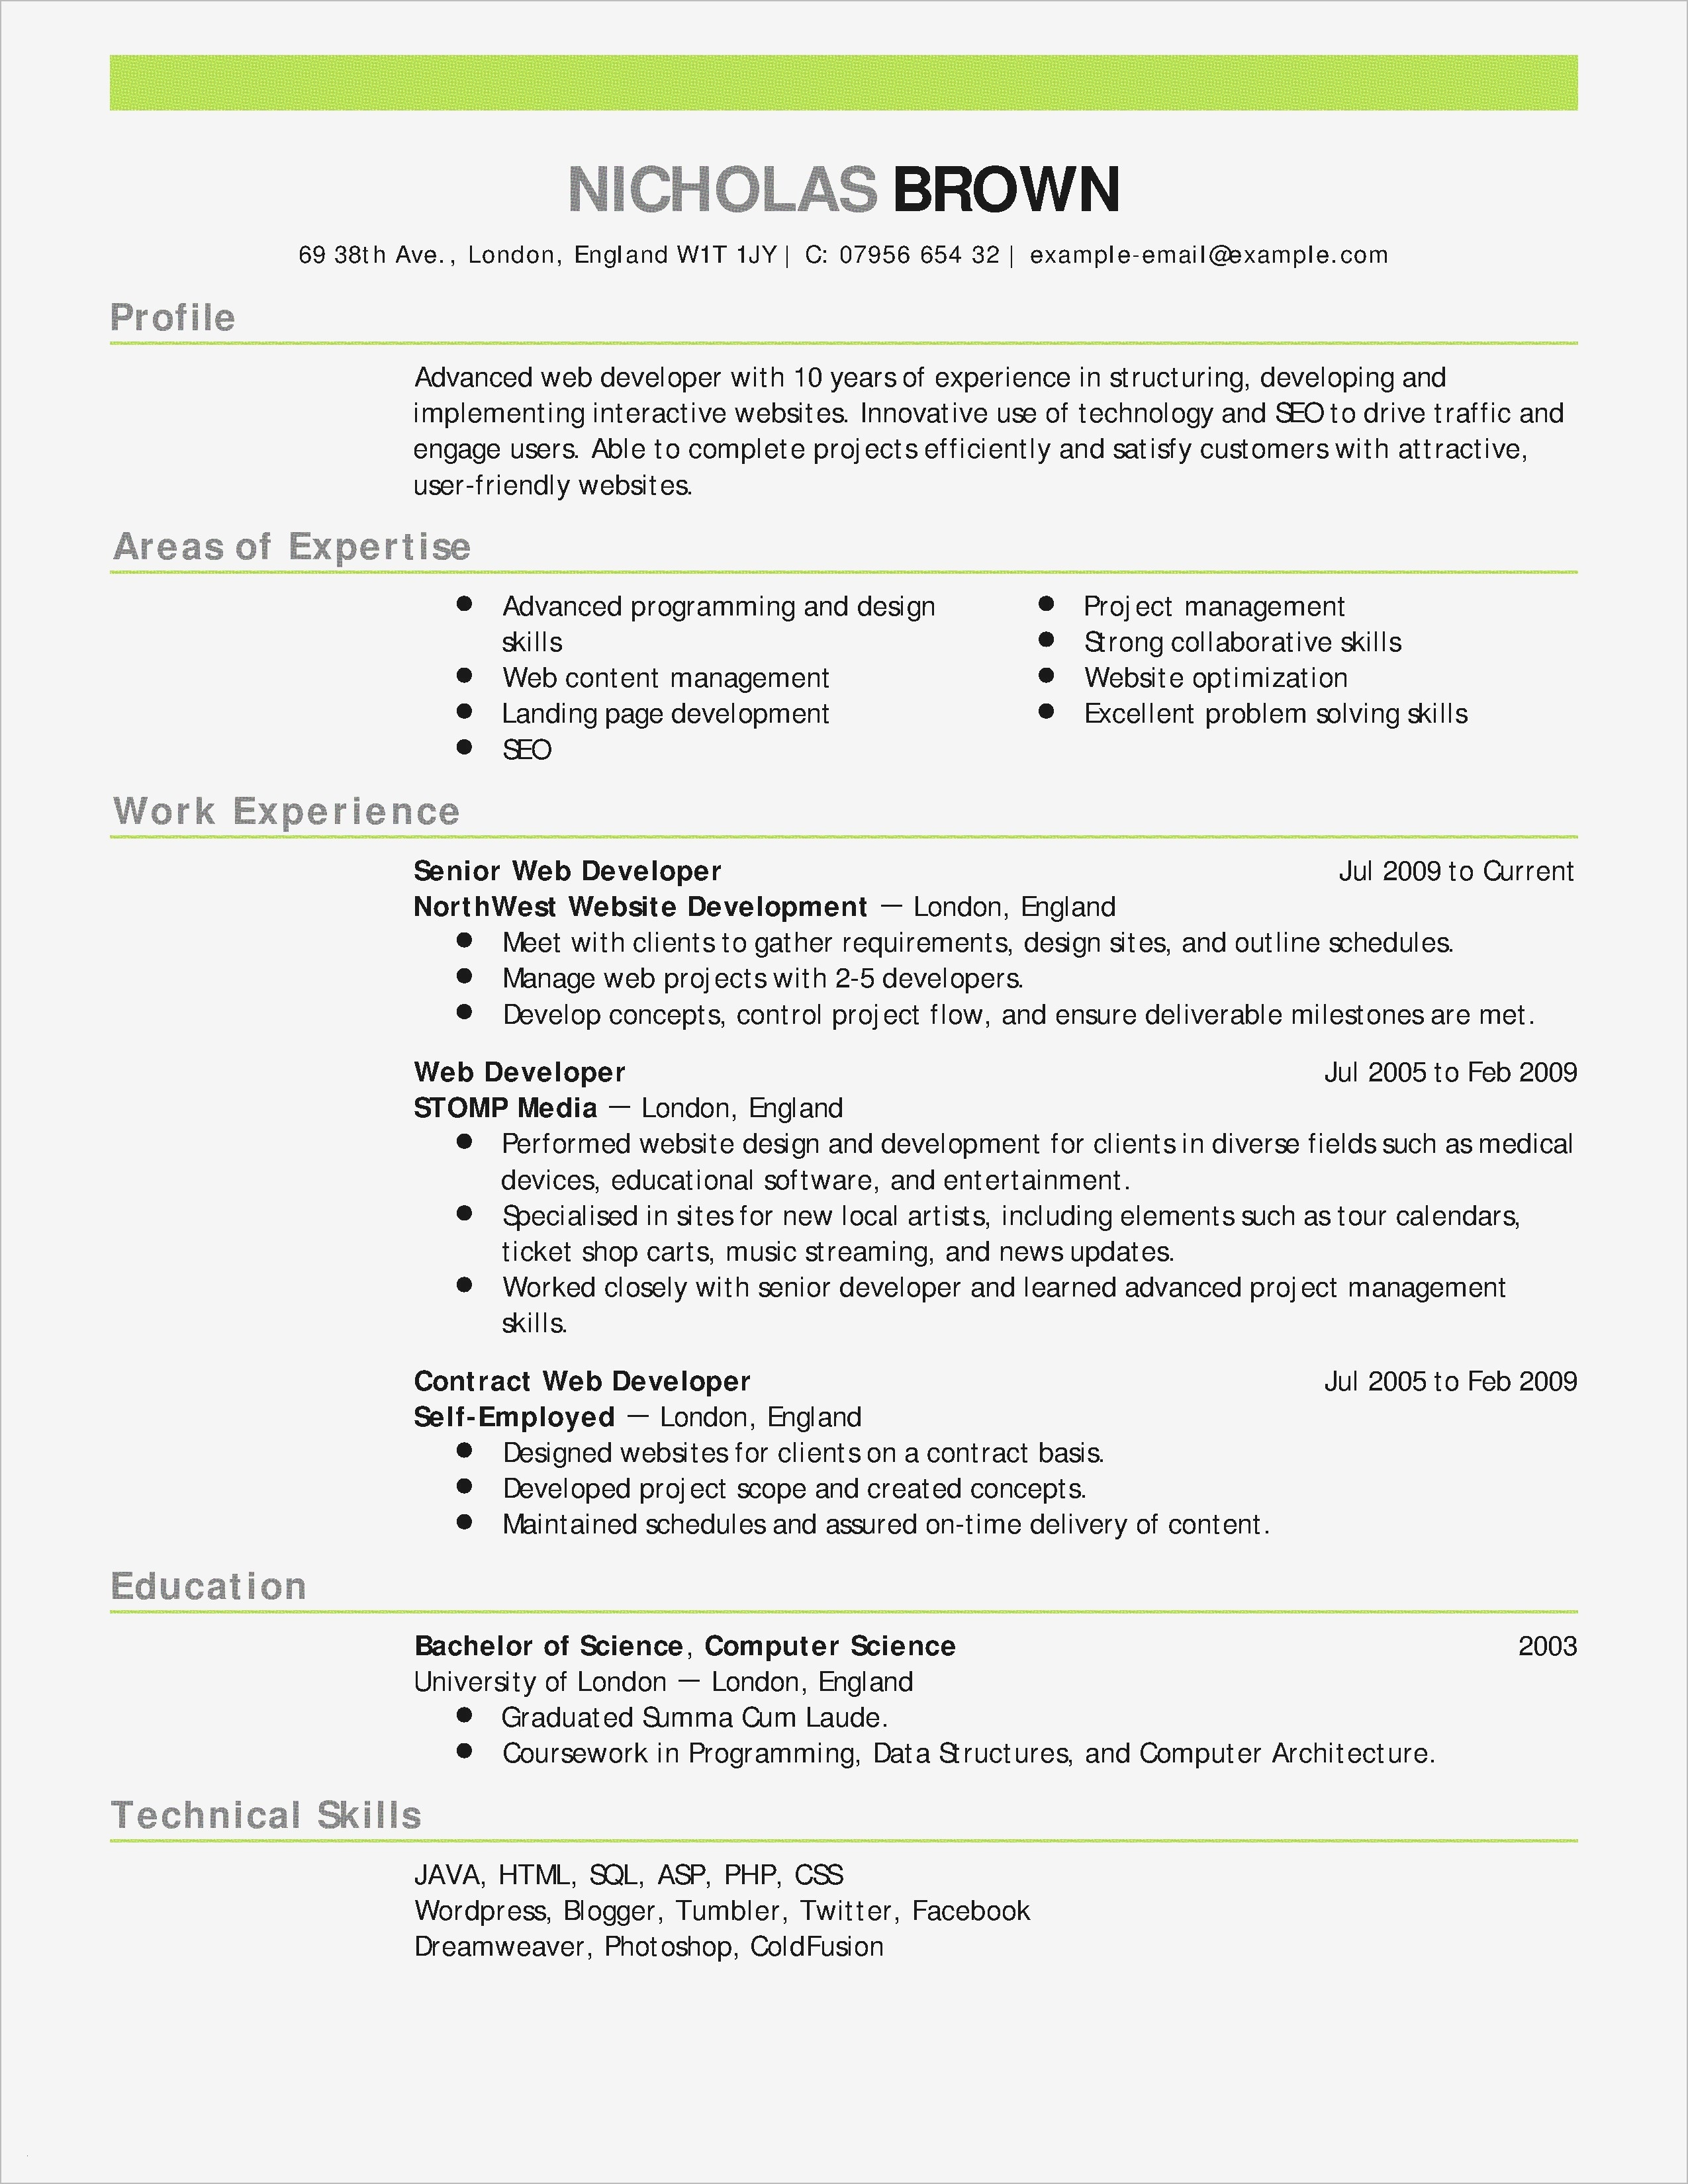 Free Online Resume Cover Letter Template - Professional Resume Template Free Line